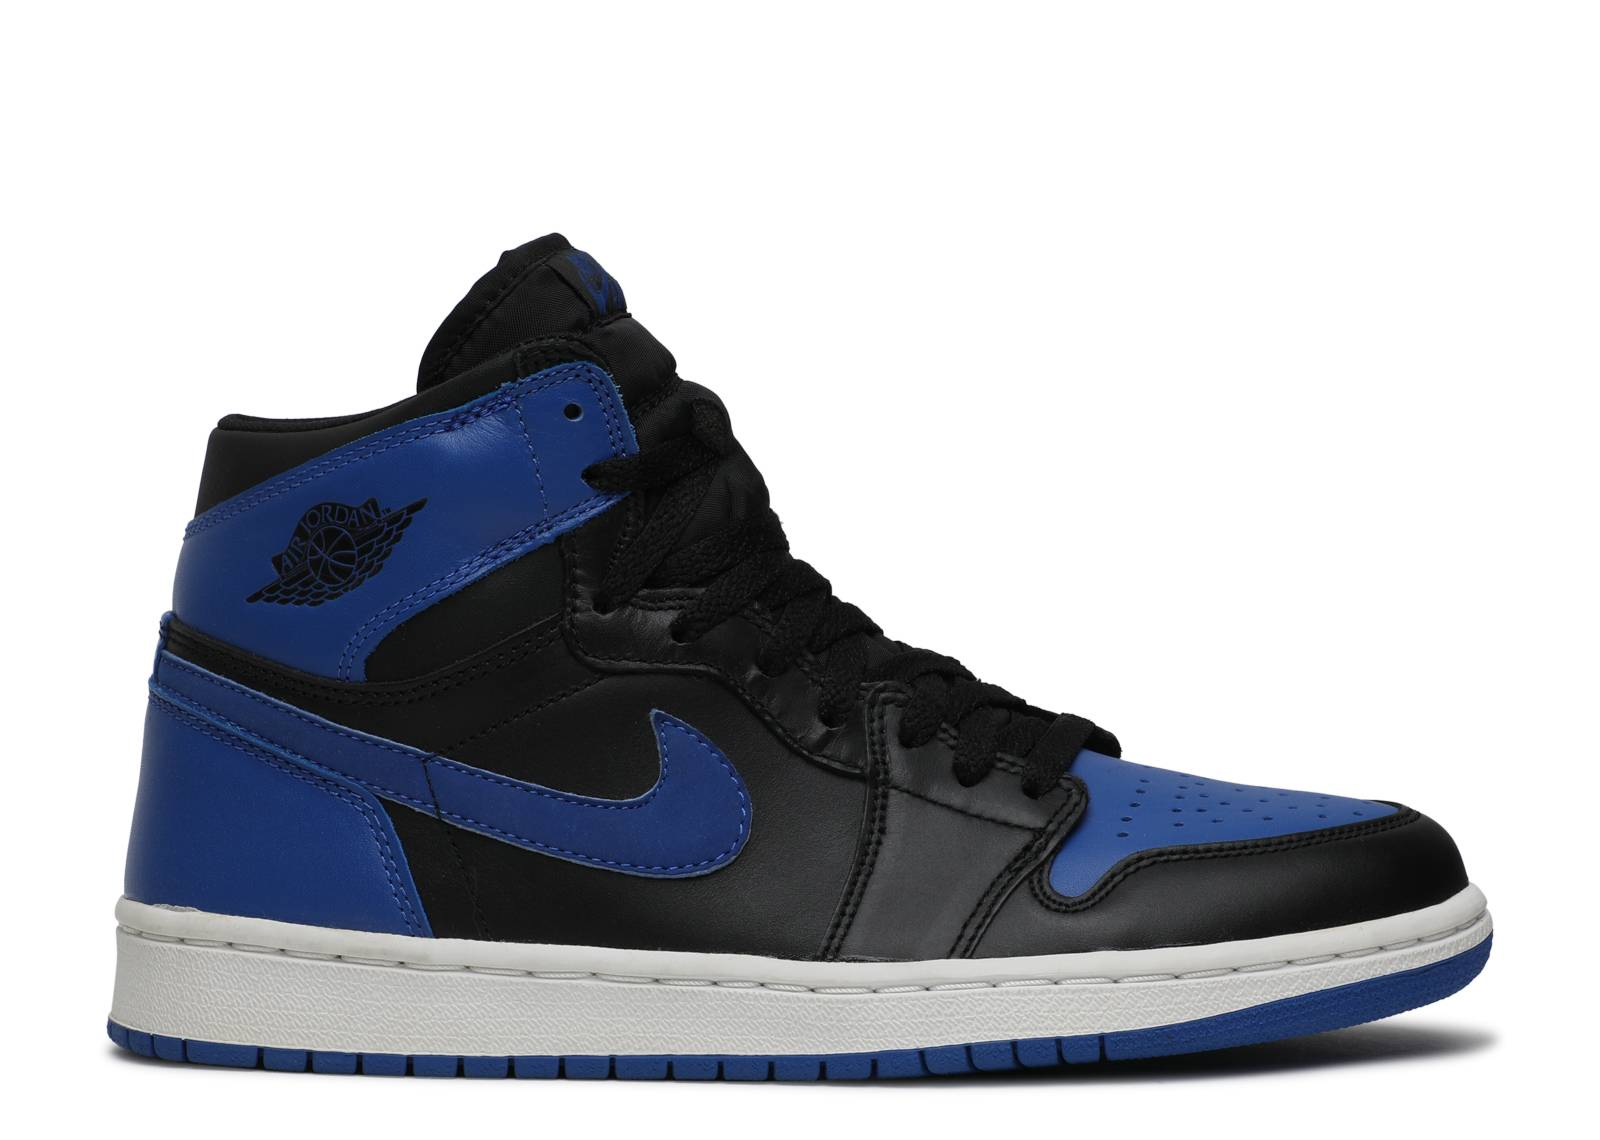 fdbdcd14252 Air Jordan 1 Retro - Air Jordan - 136066 041 - black/royal blue ...